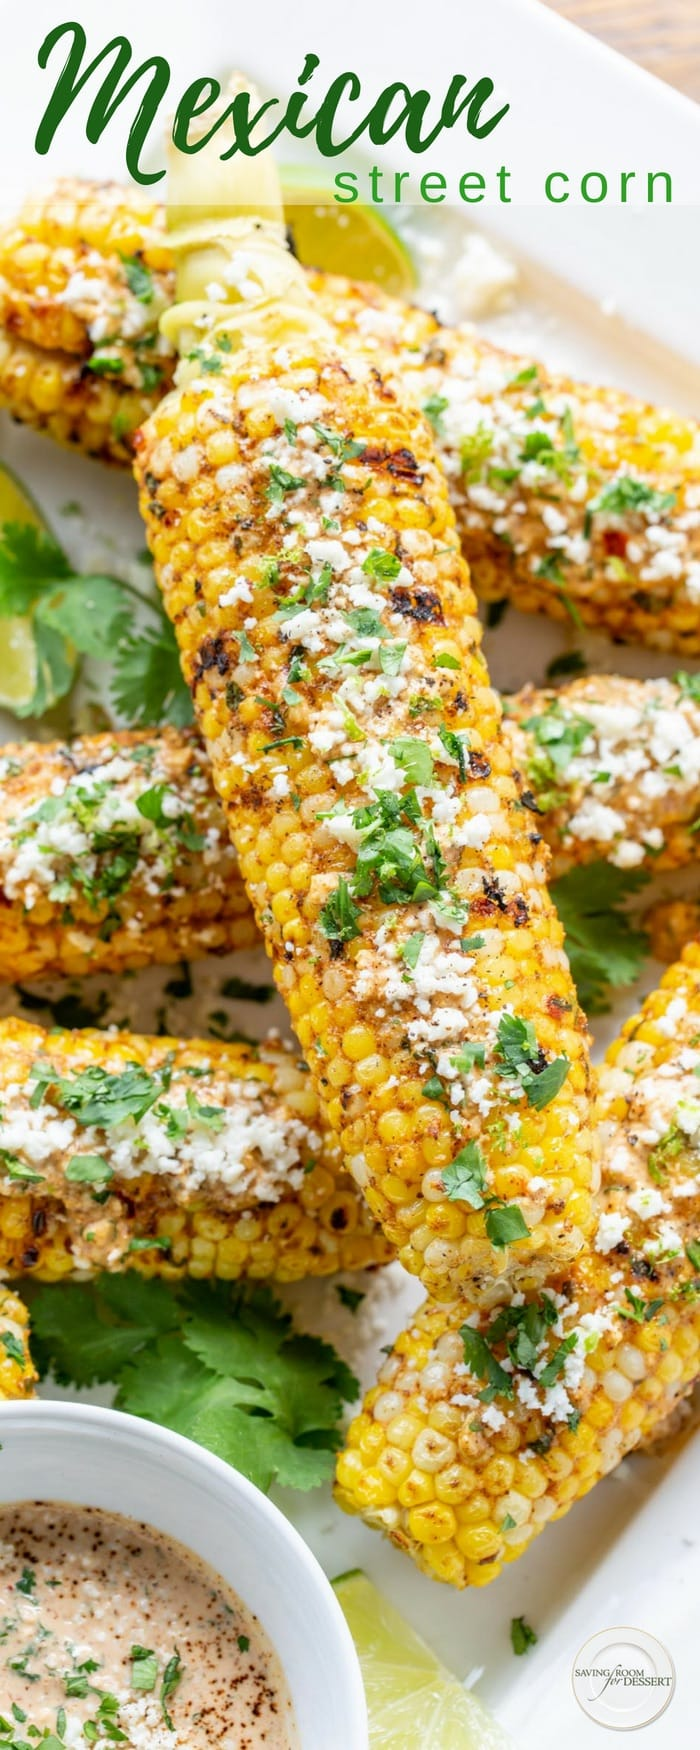 Grilled Mexican Street Corn (Elote) - a wonderfully messy, well spiced, delicious summer treat! Sweet summer corn is slathered in a mixture of mayonnaise, garlic, lime juice, chili powder and Cotija cheese then grilled to perfection. #streetcorn #grilled #grilledcorn #corn #mexicanstreetcorn #mexican #summercorn #vegetable #grilledvegetable